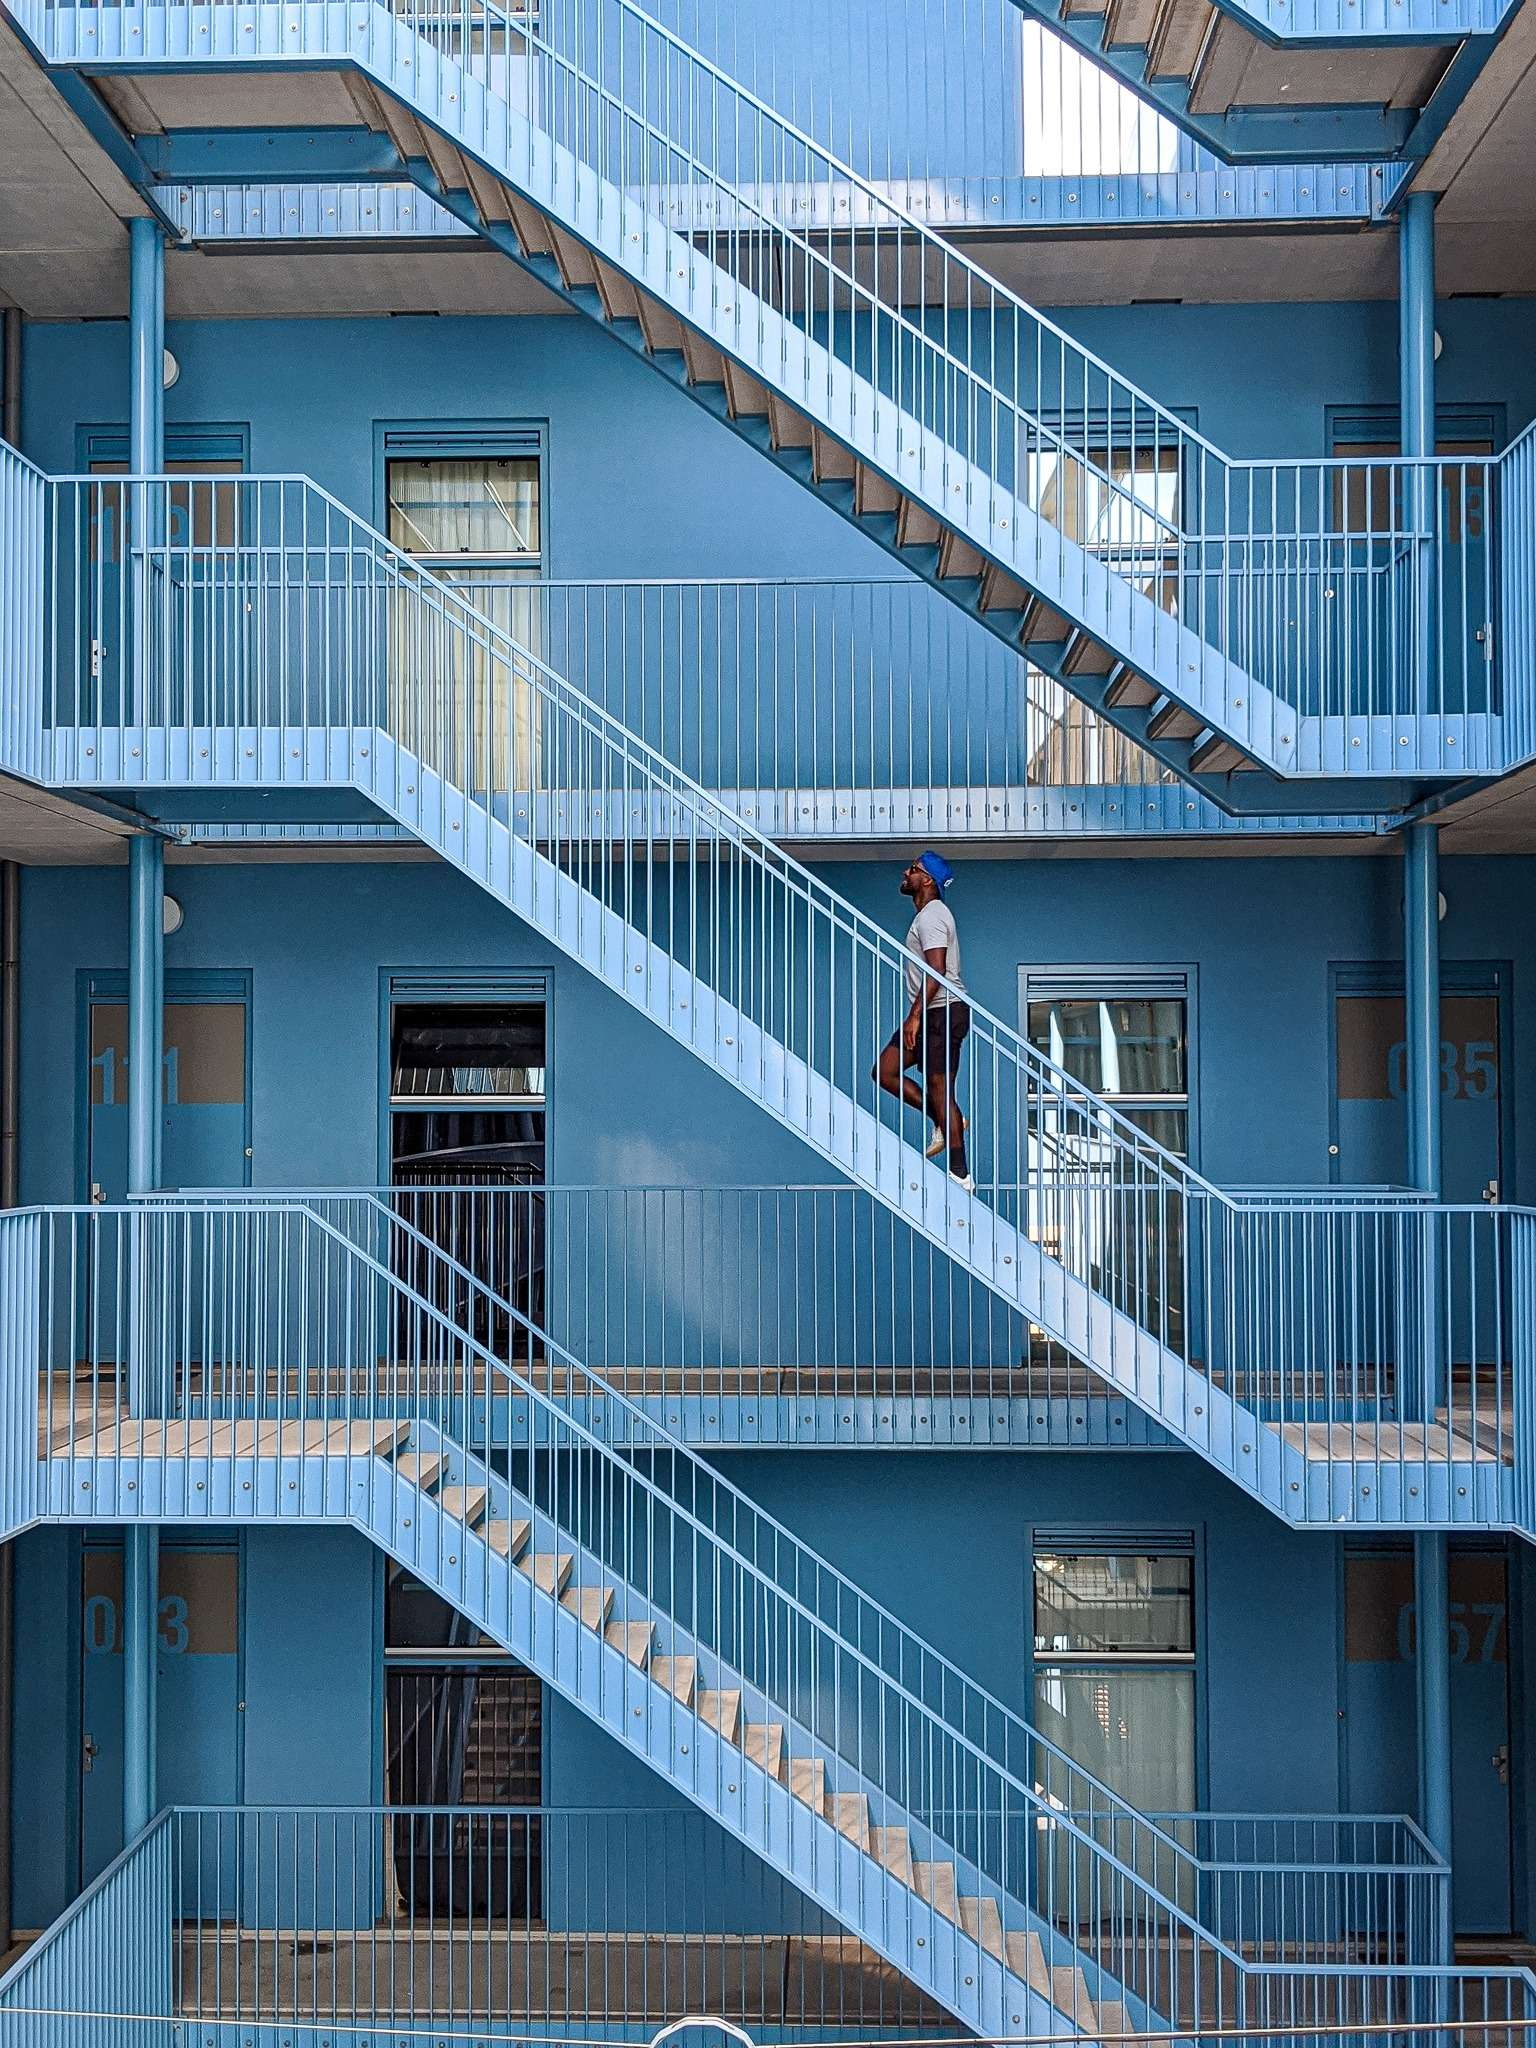 man in white t-shirt and black shorts walks up a set of blue metal stairs in the courtyard of an apartment block